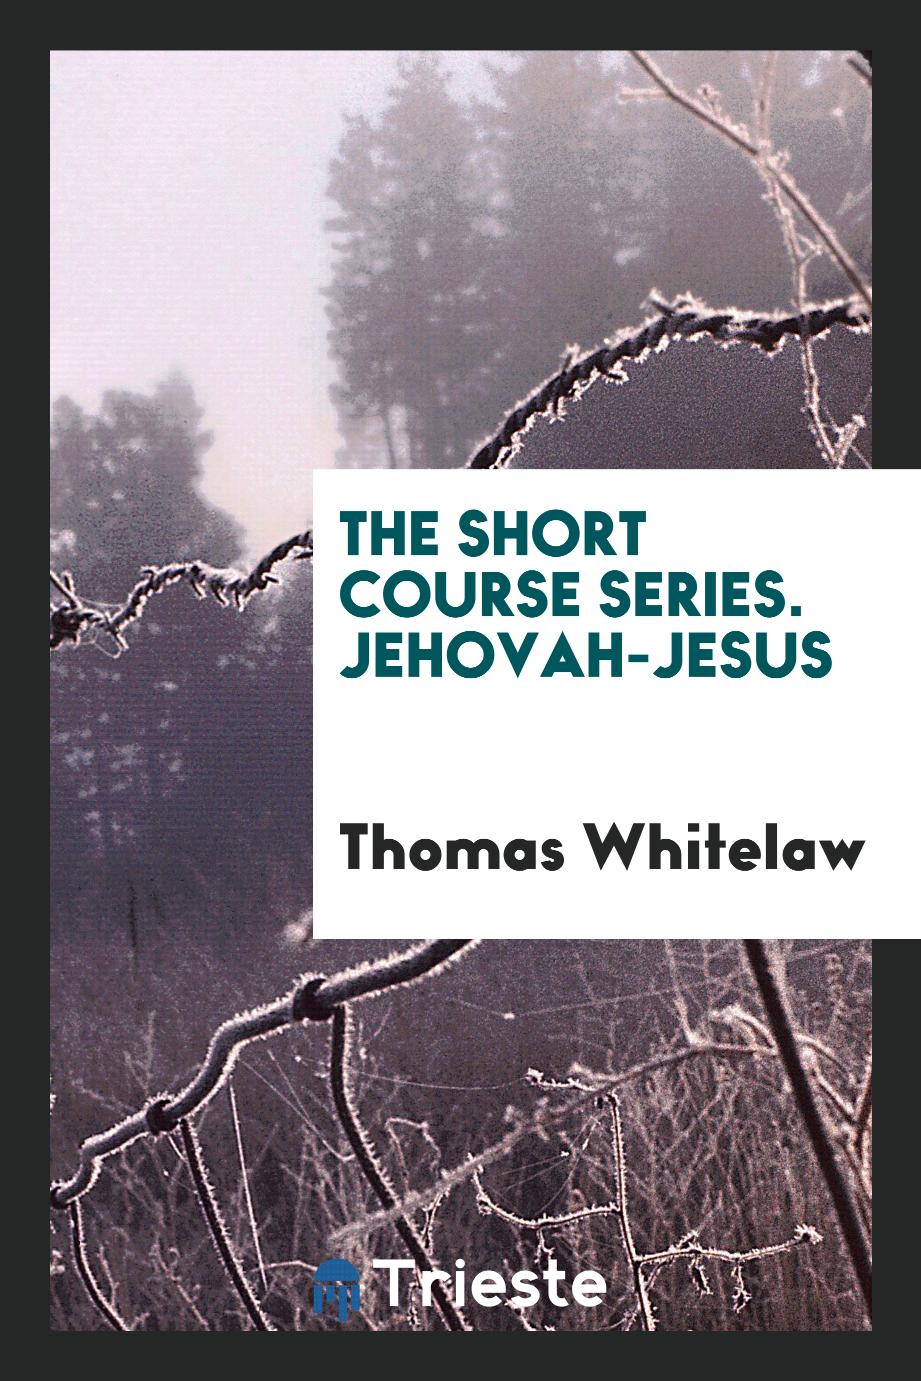 The Short Course Series. Jehovah-Jesus